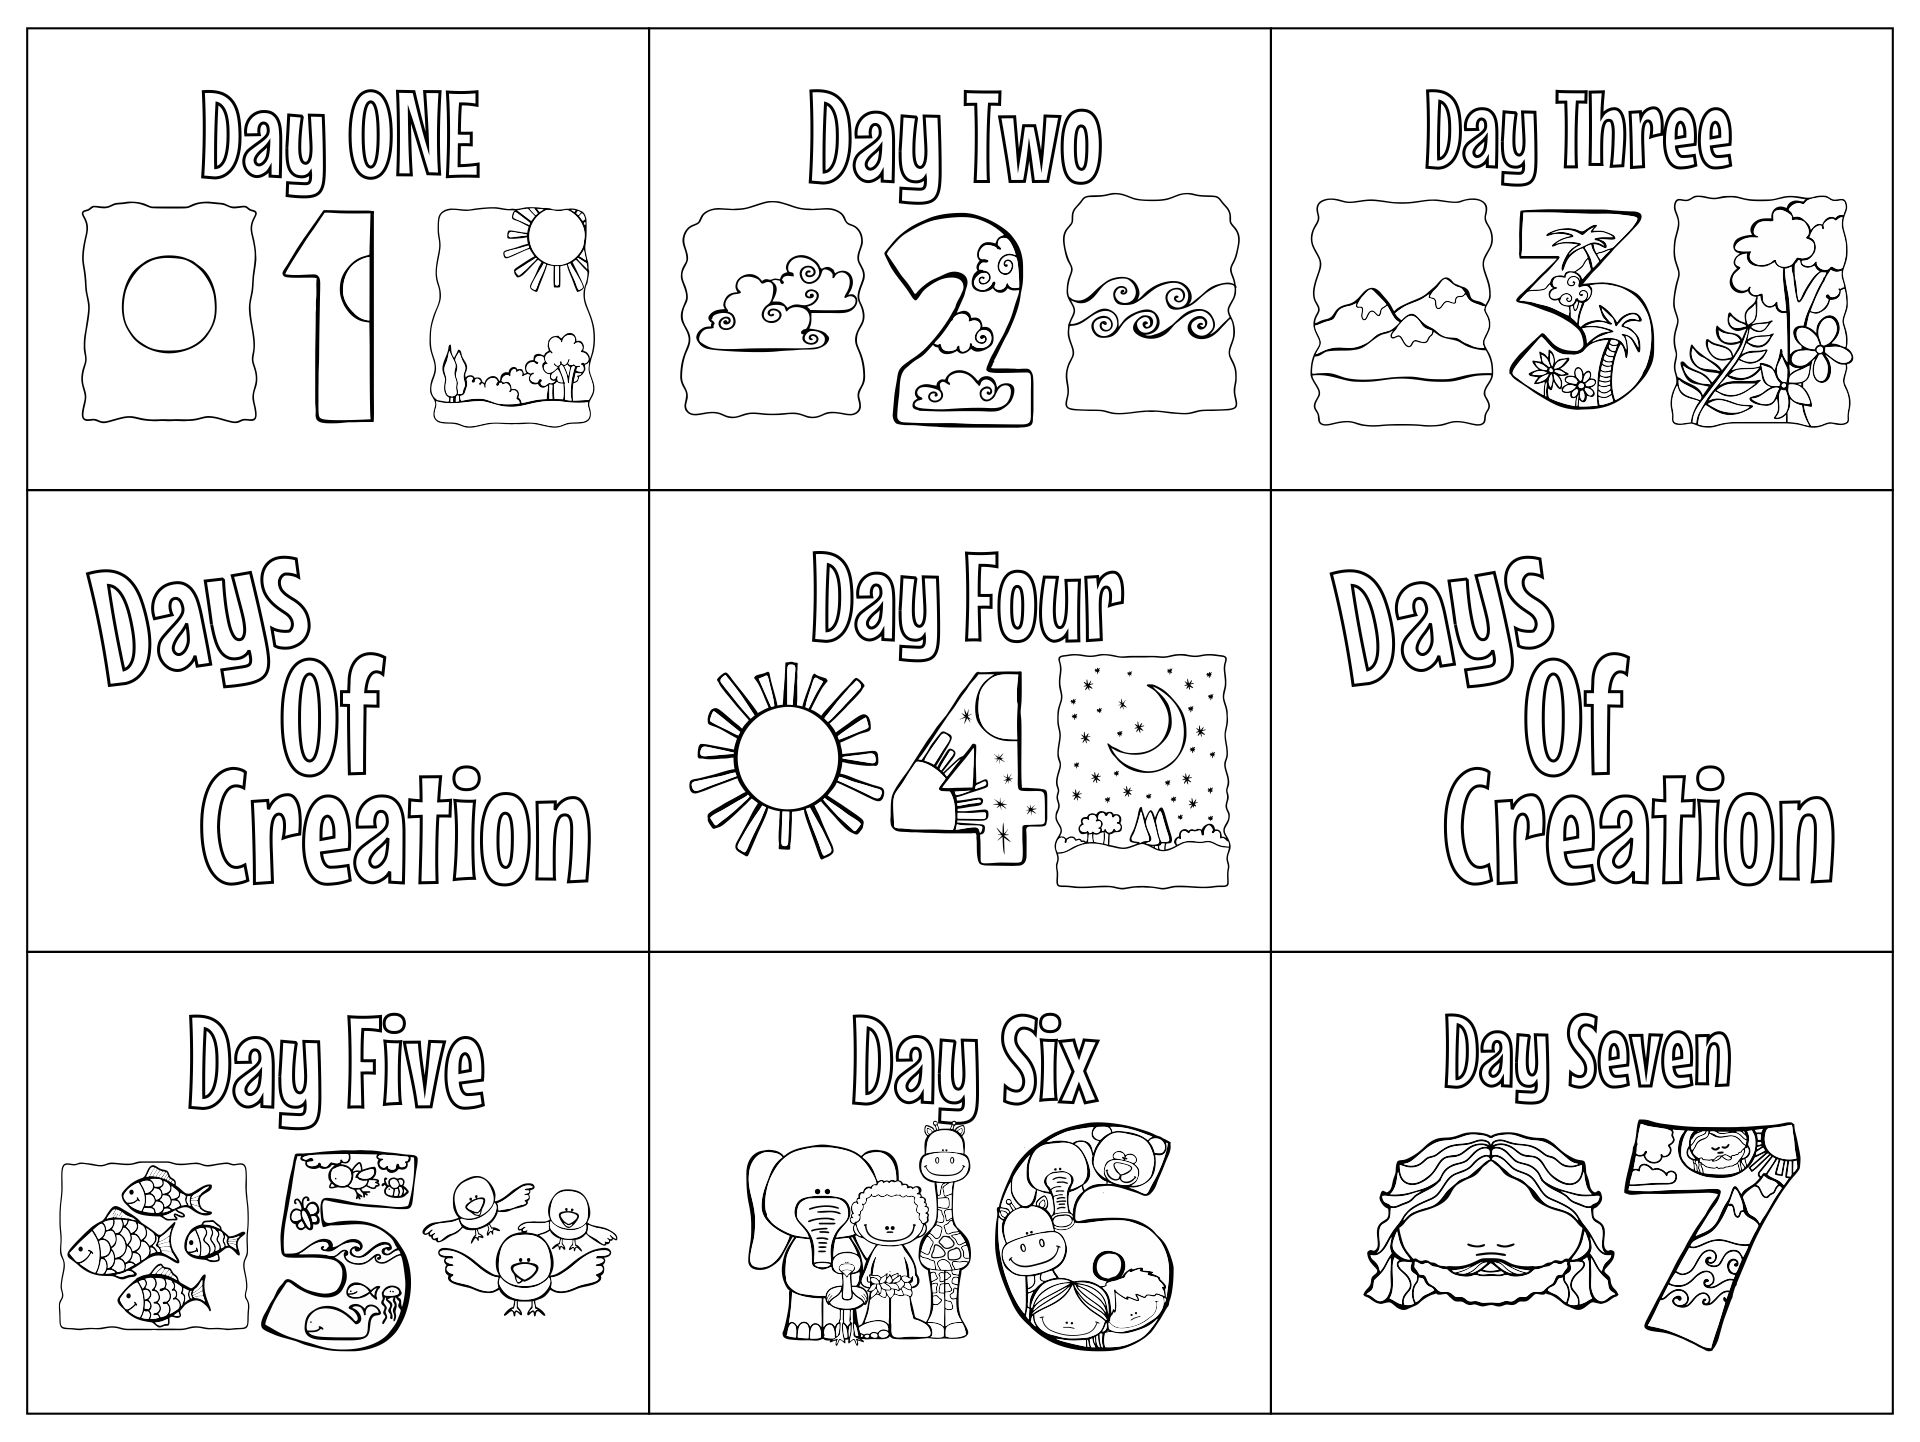 Days of Creation Coloring Pages for Kids